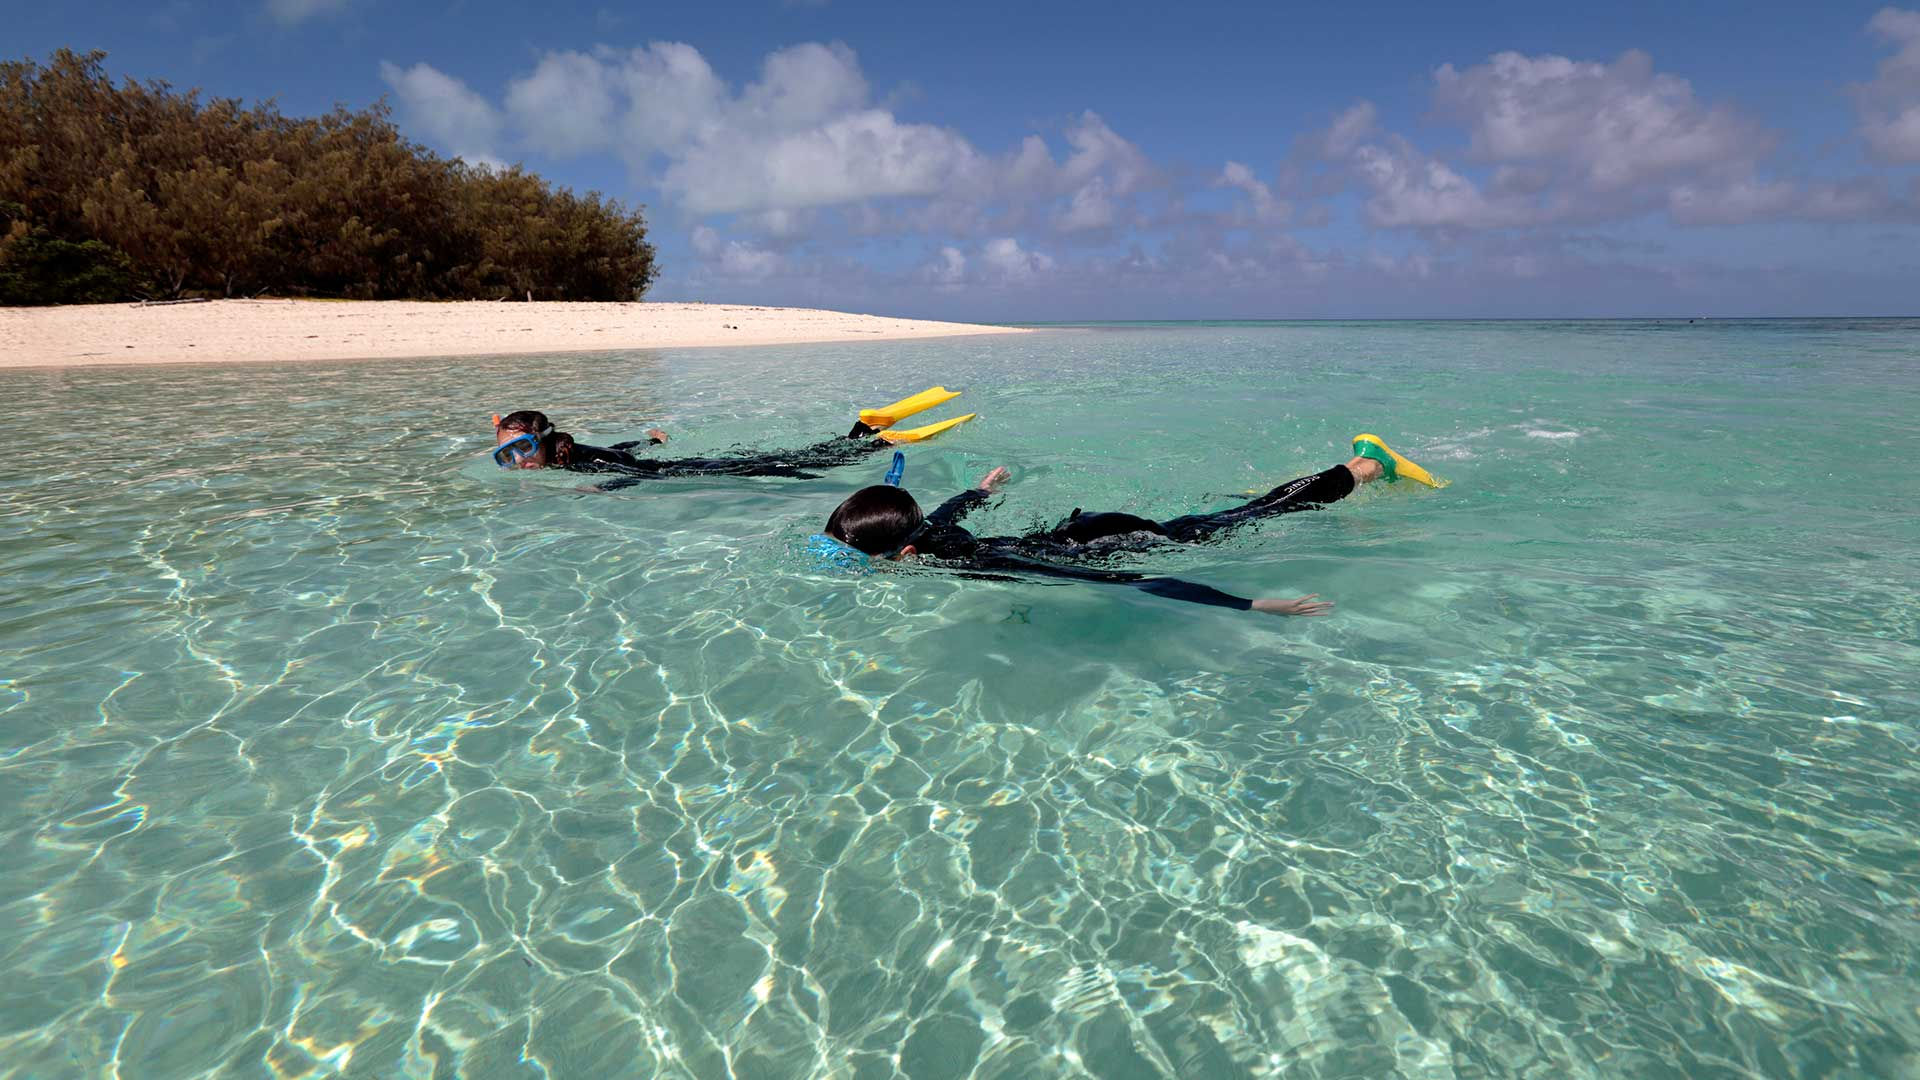 Snorkeling in the clear shallow waters of the lagoon at Heron Island on the Great Barrier Reef, Queensland, Australia